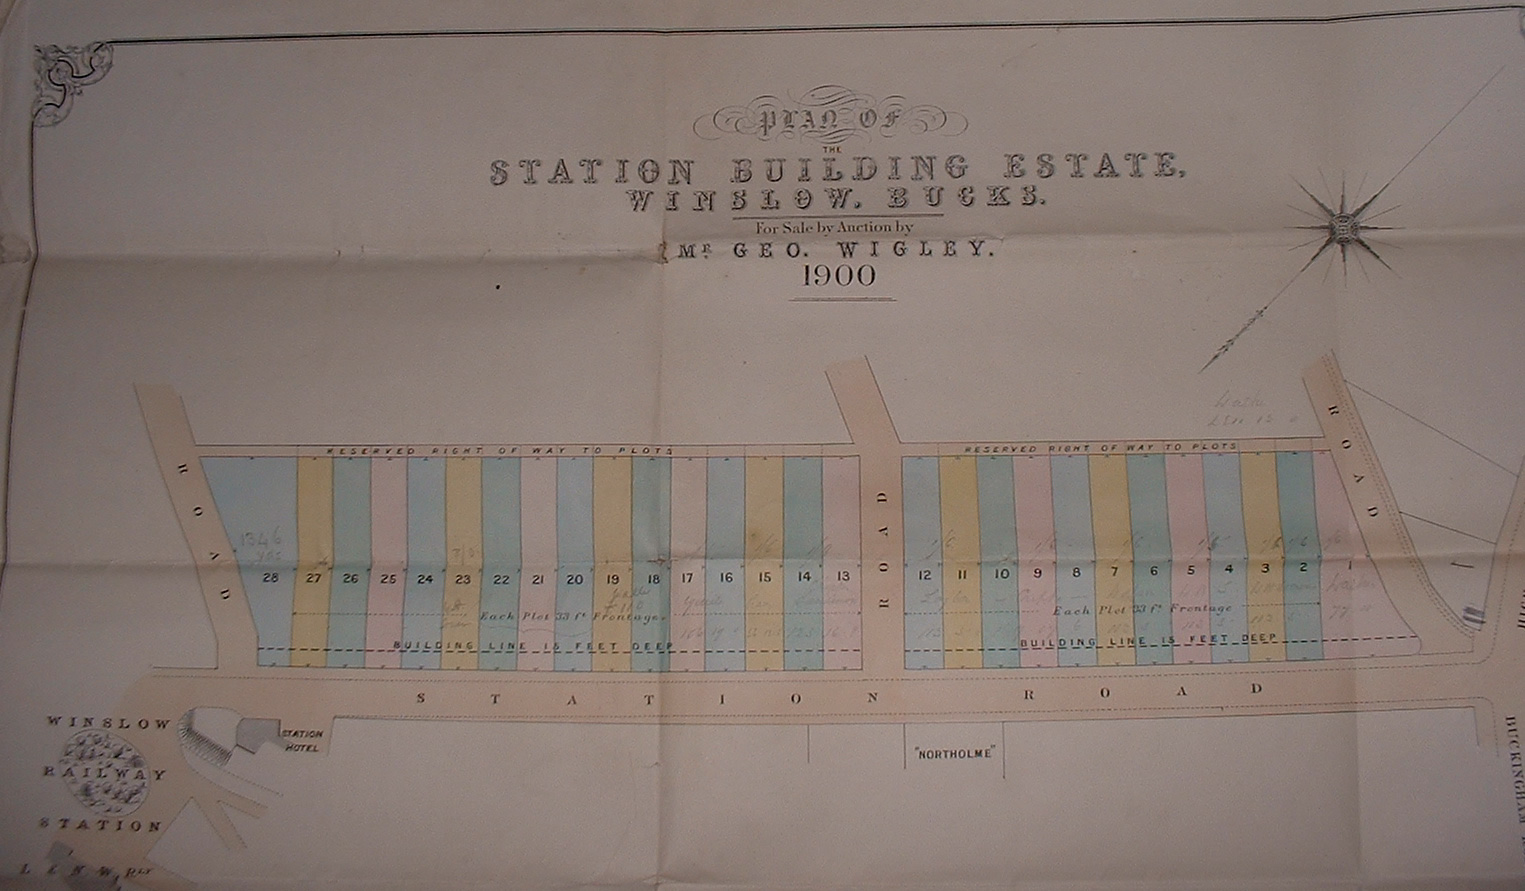 Plan from 1900 sale